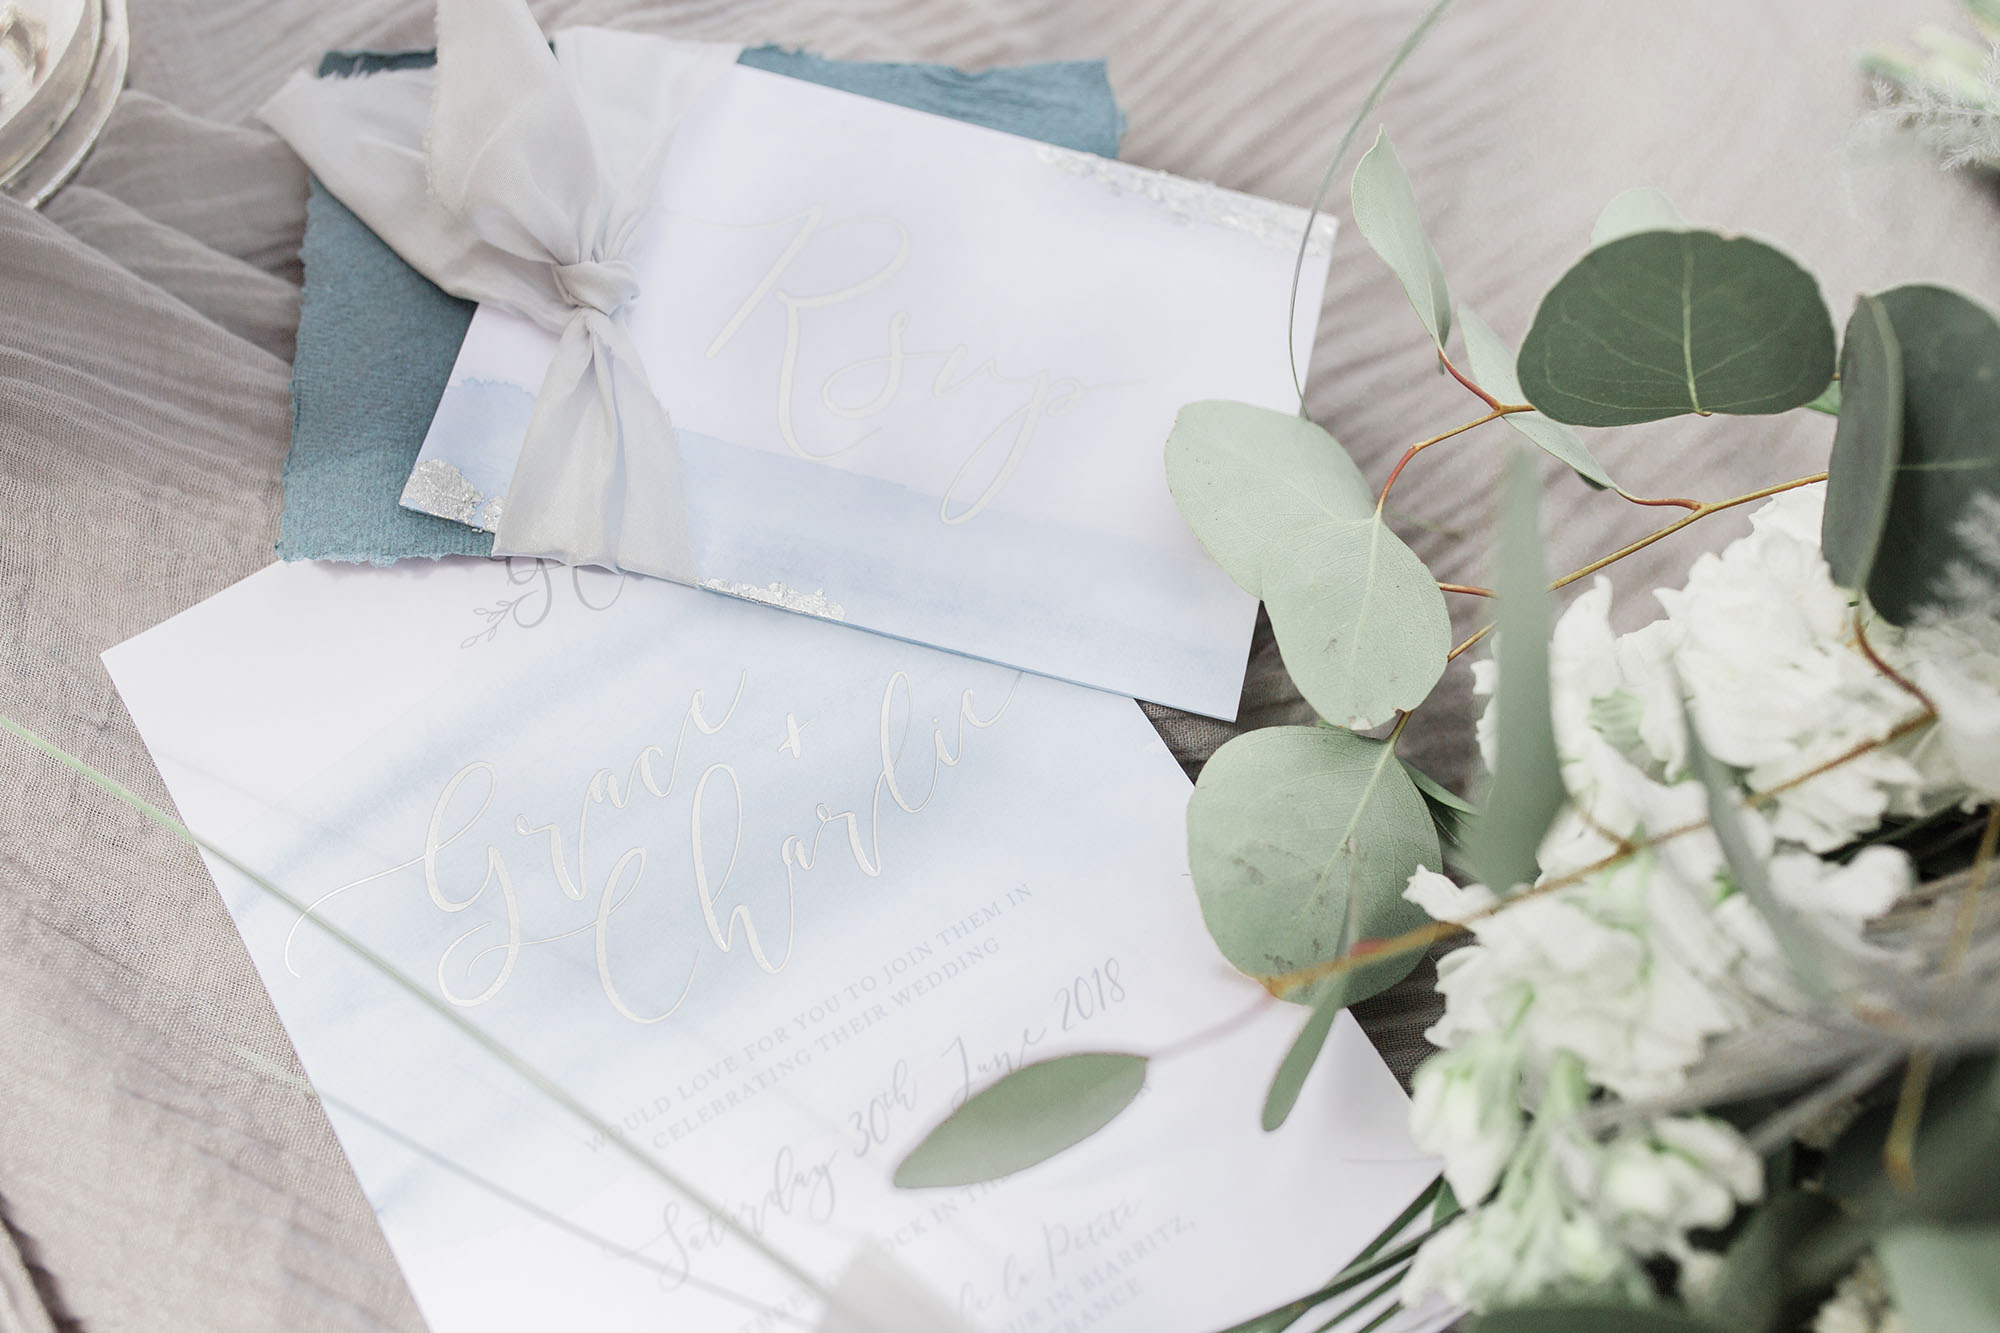 Blue watercolour wedding invites with silver hot foil lettering